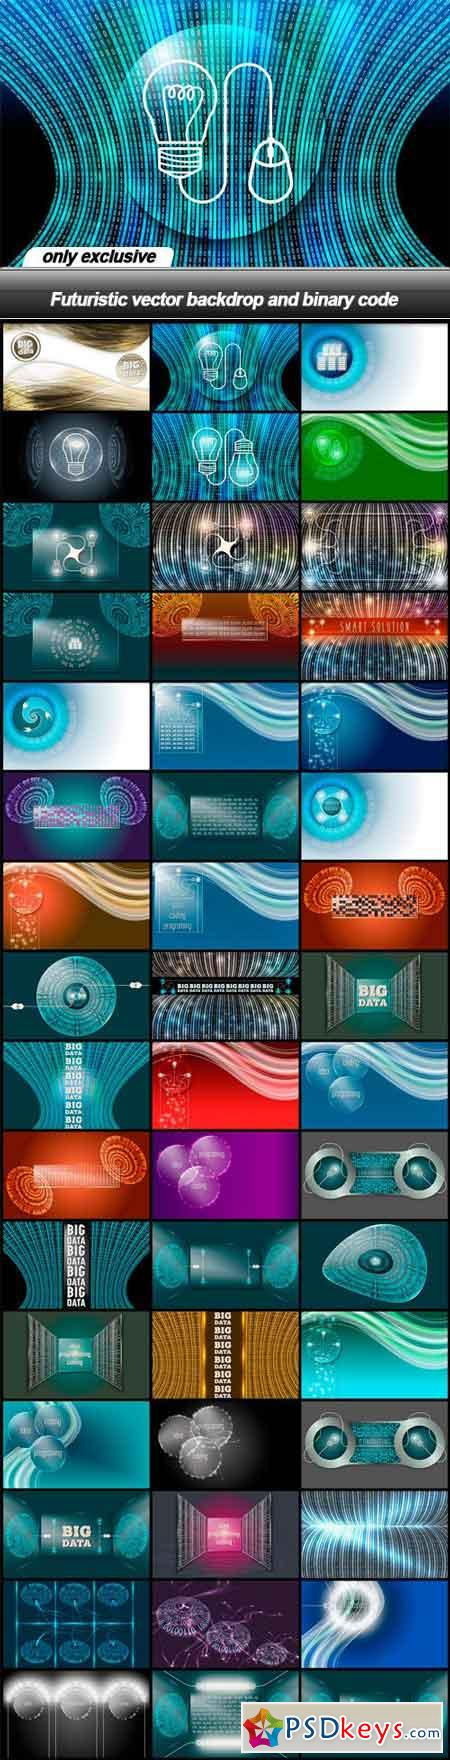 Futuristic vector backdrop and binary code - 48 EPS